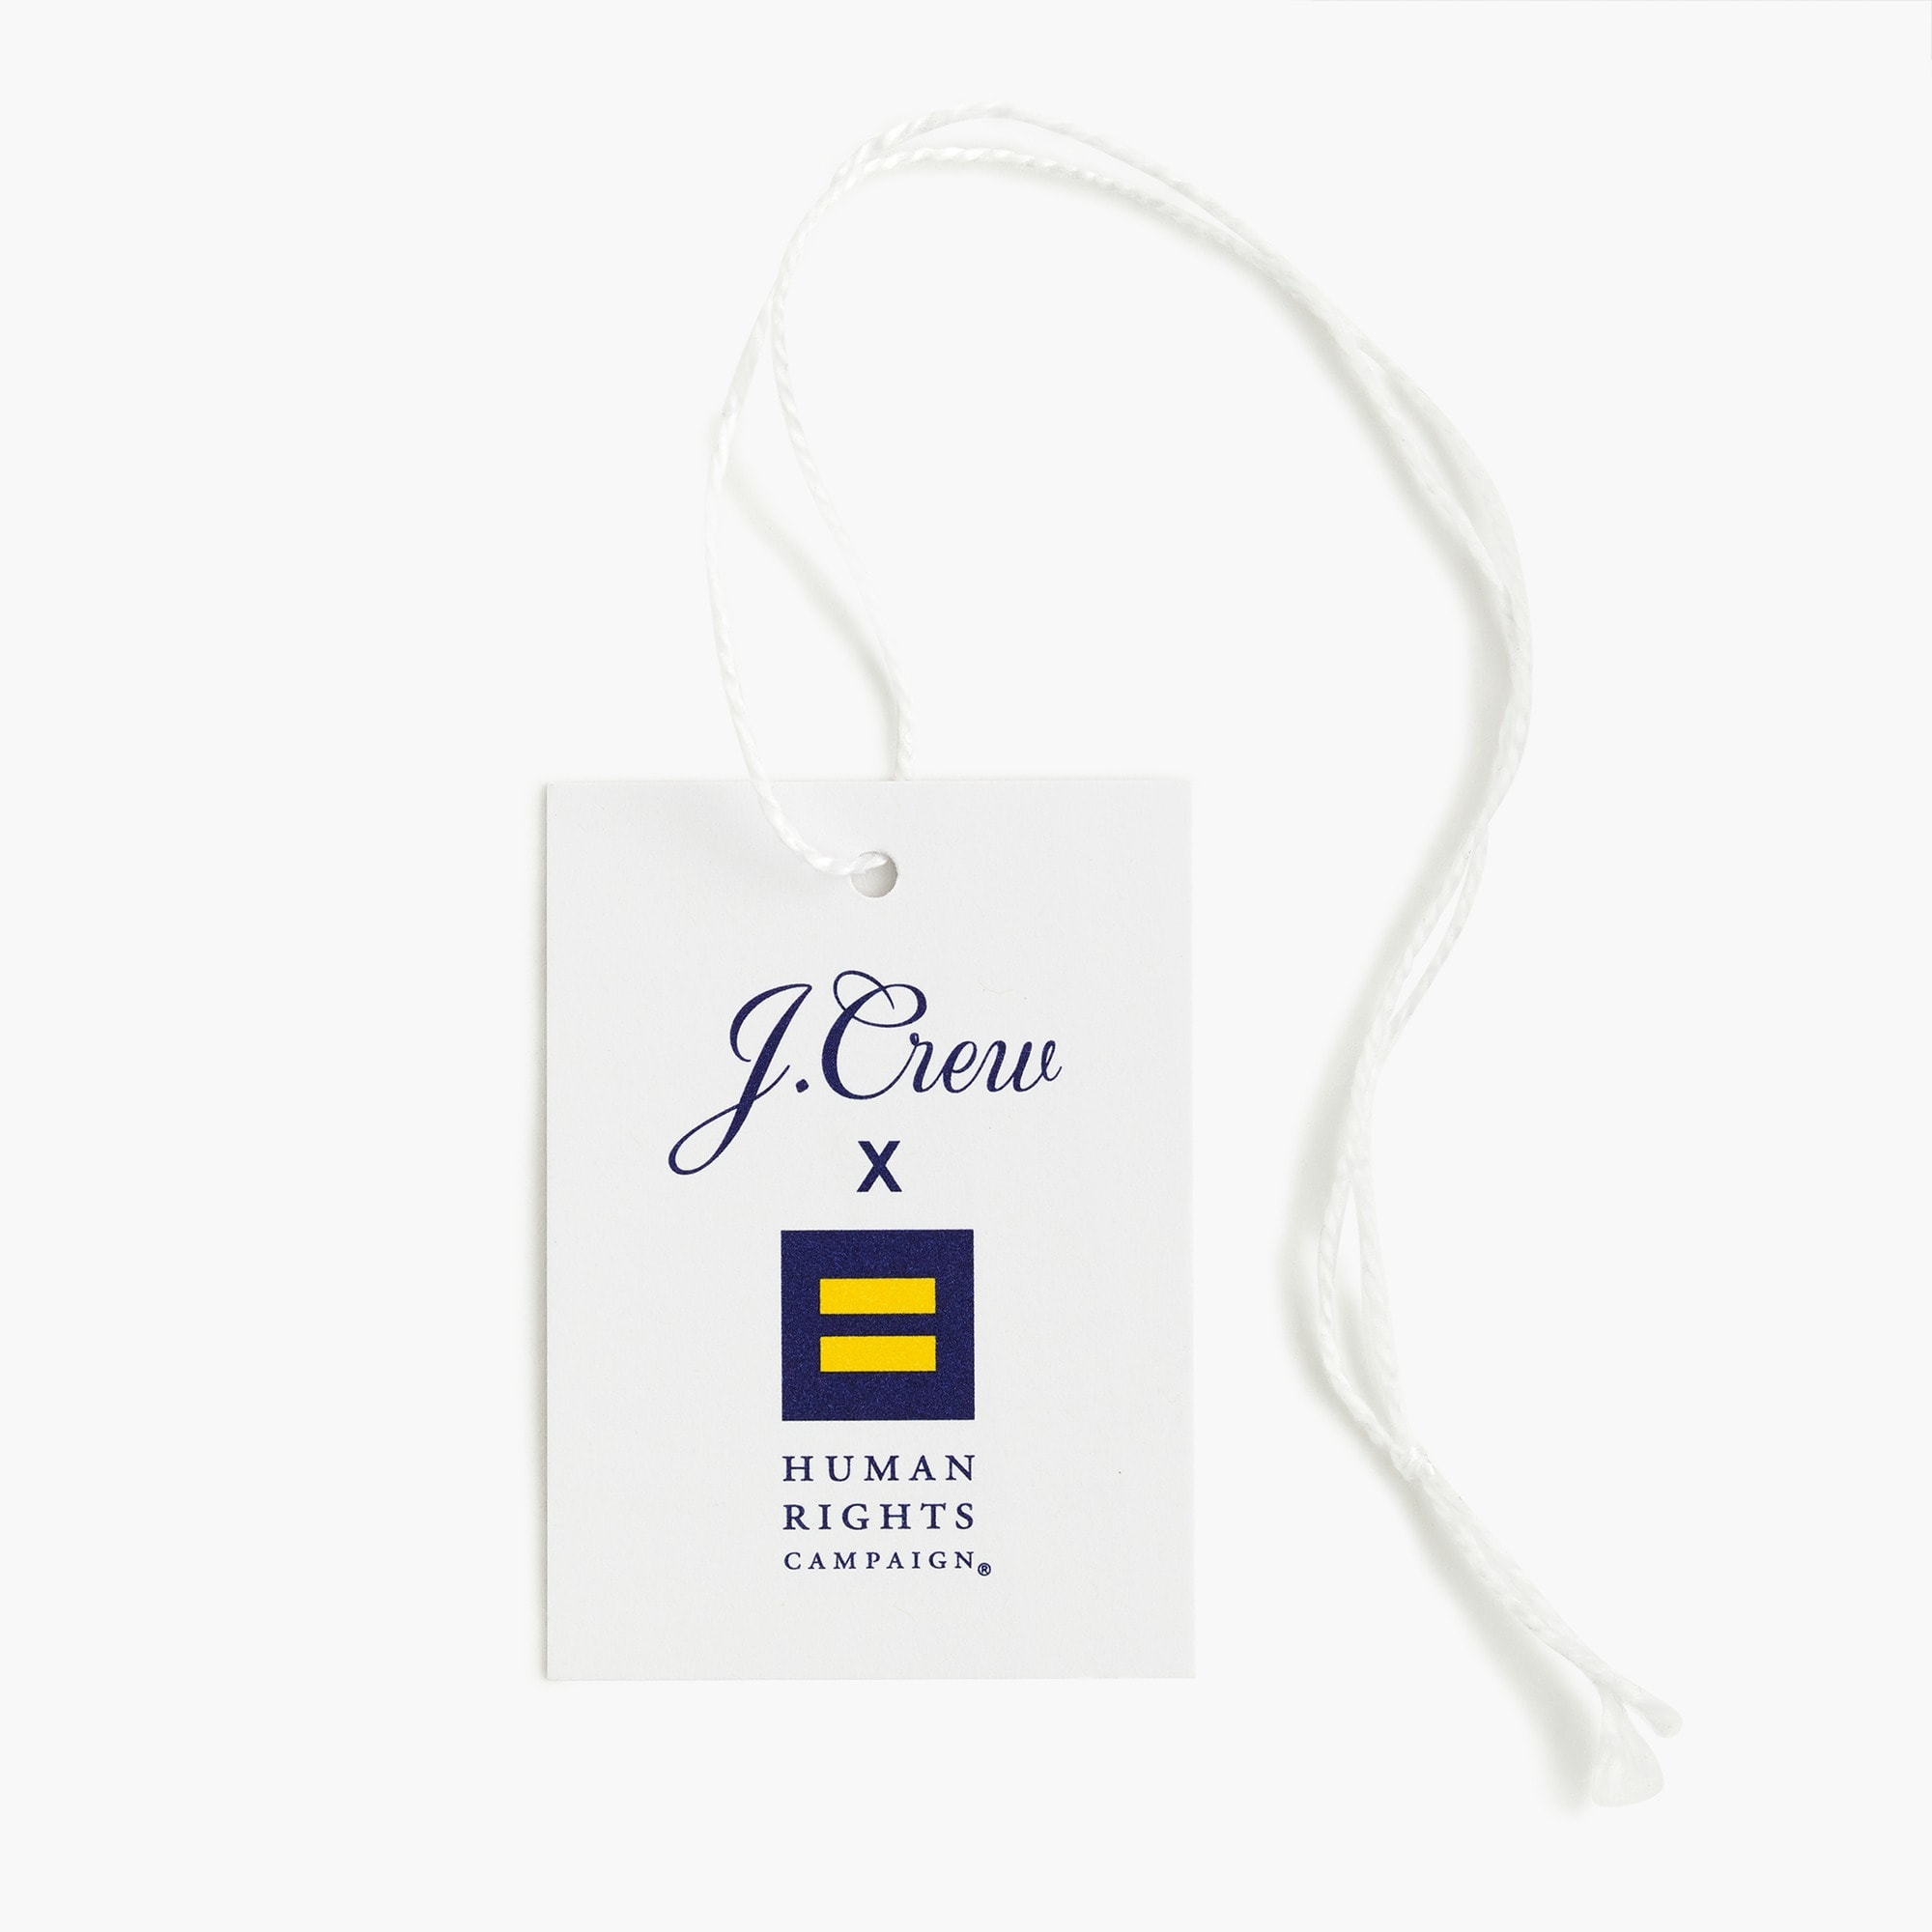 Image 2 for J.Crew X Human Rights Campaign Pride flag socks